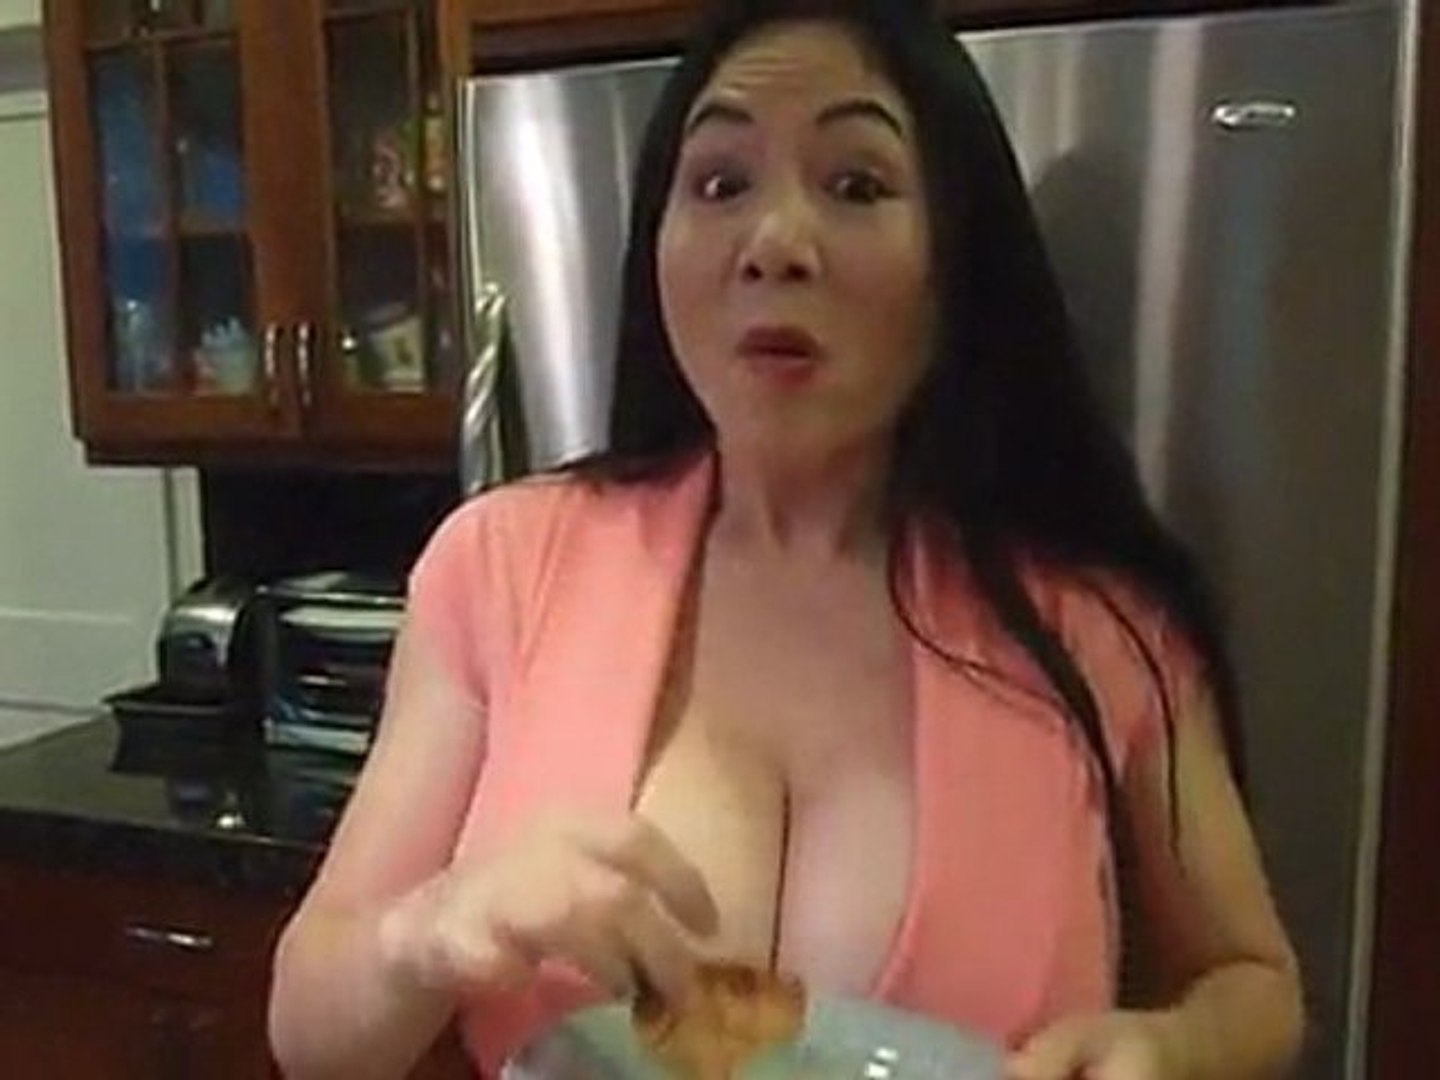 Rude Tube is HotForCooking and sexy chef Tifa!_(360p)